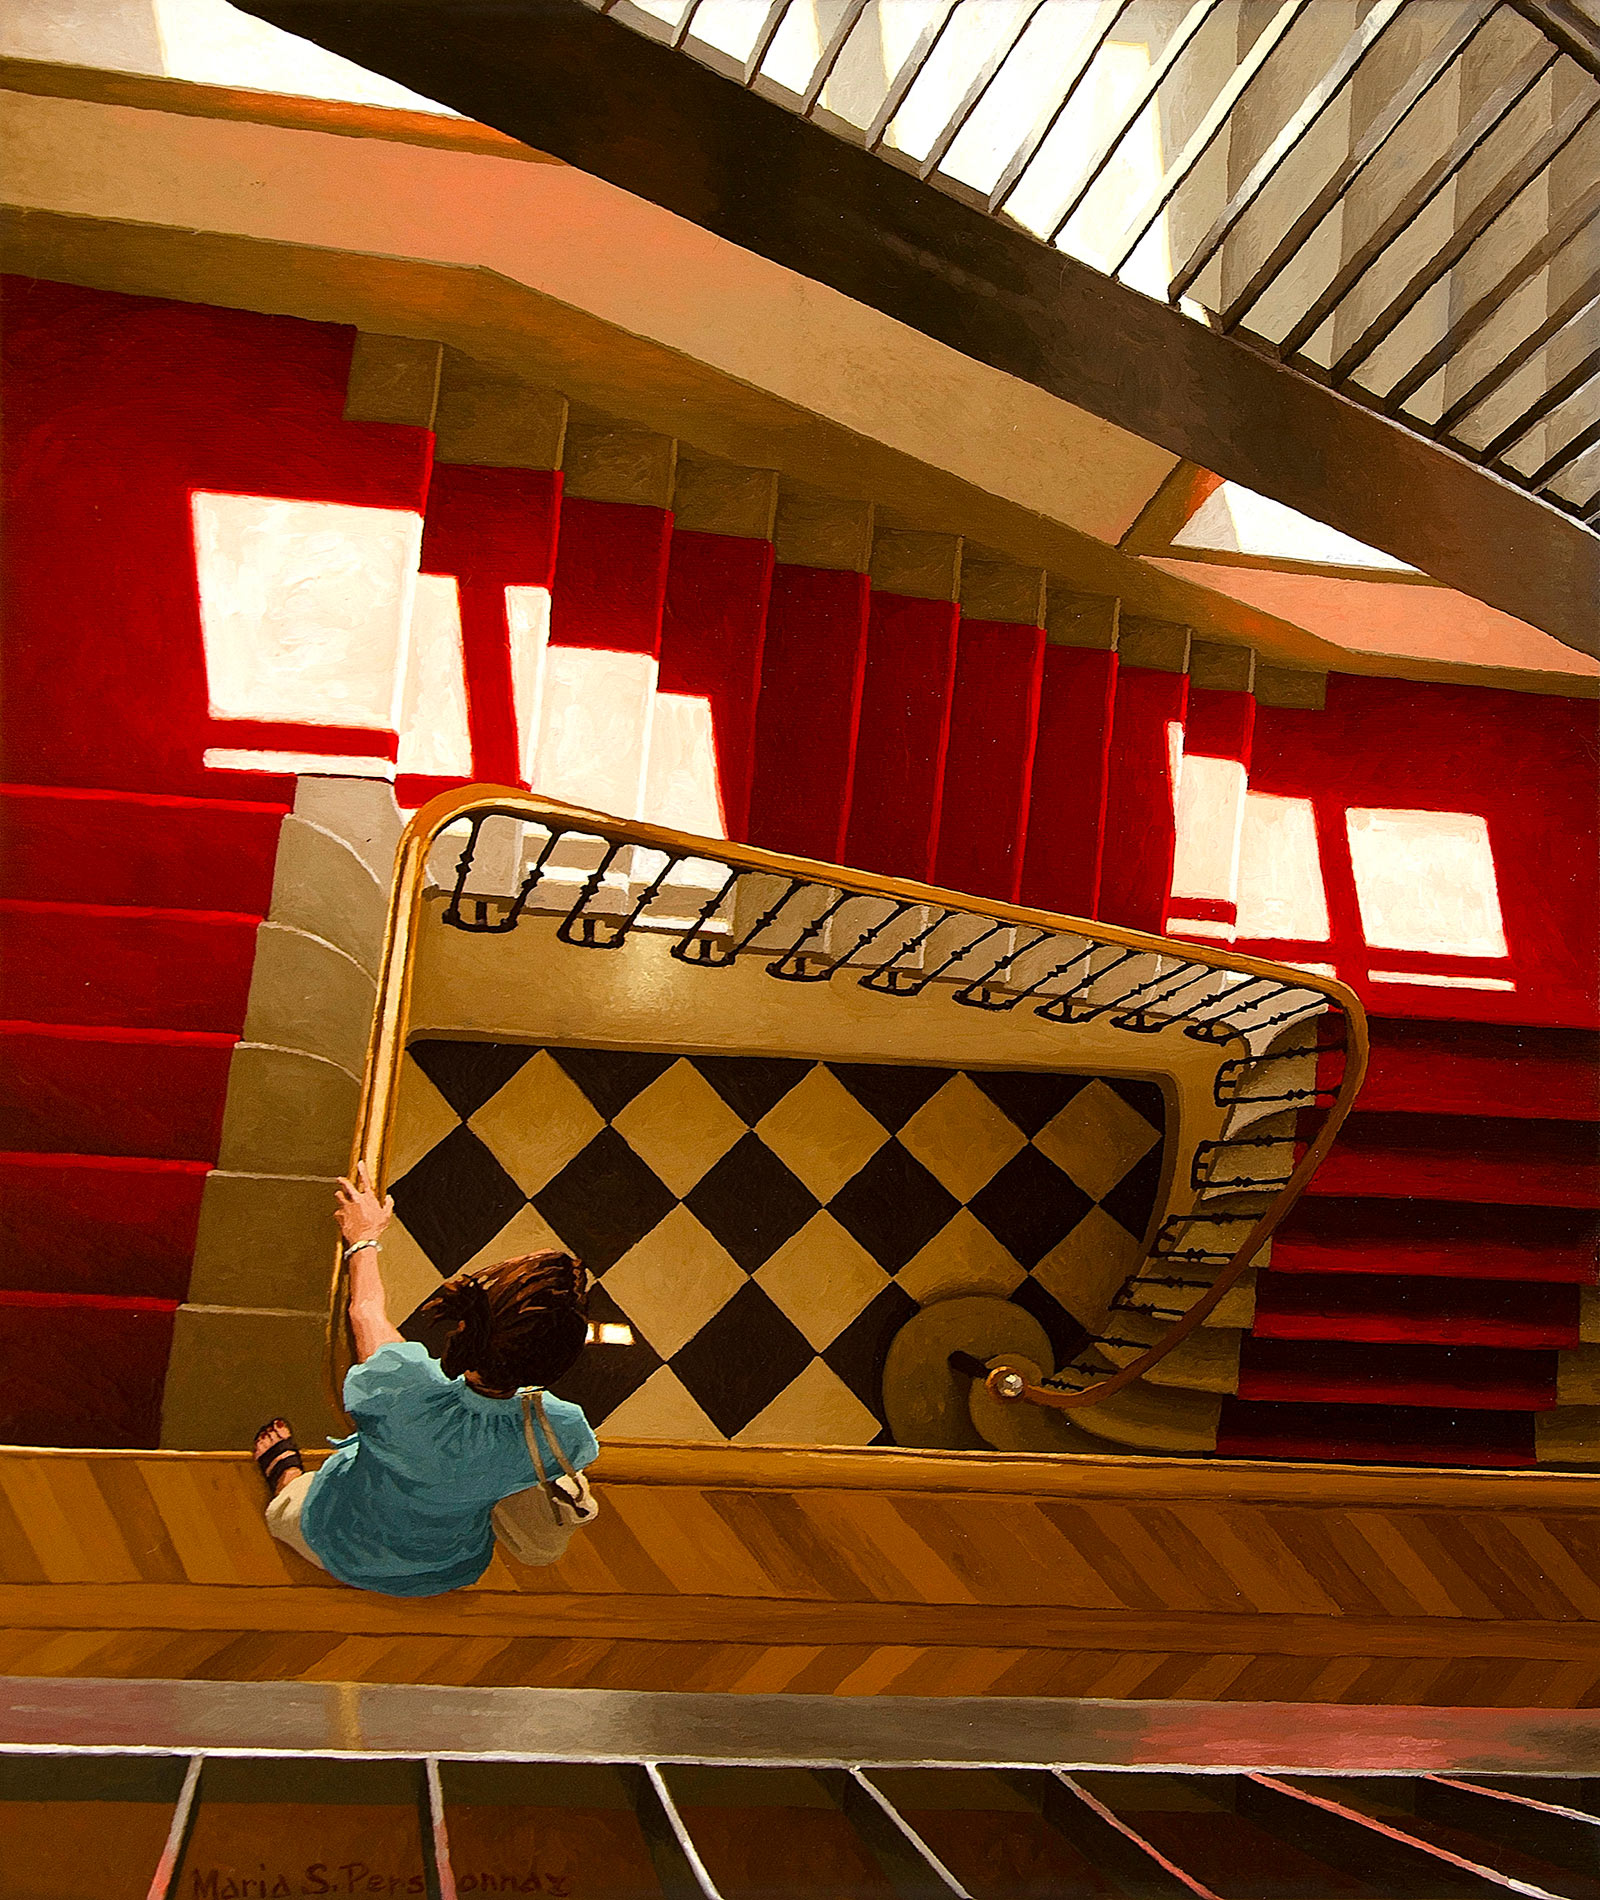 Staircase with sunny red carpet